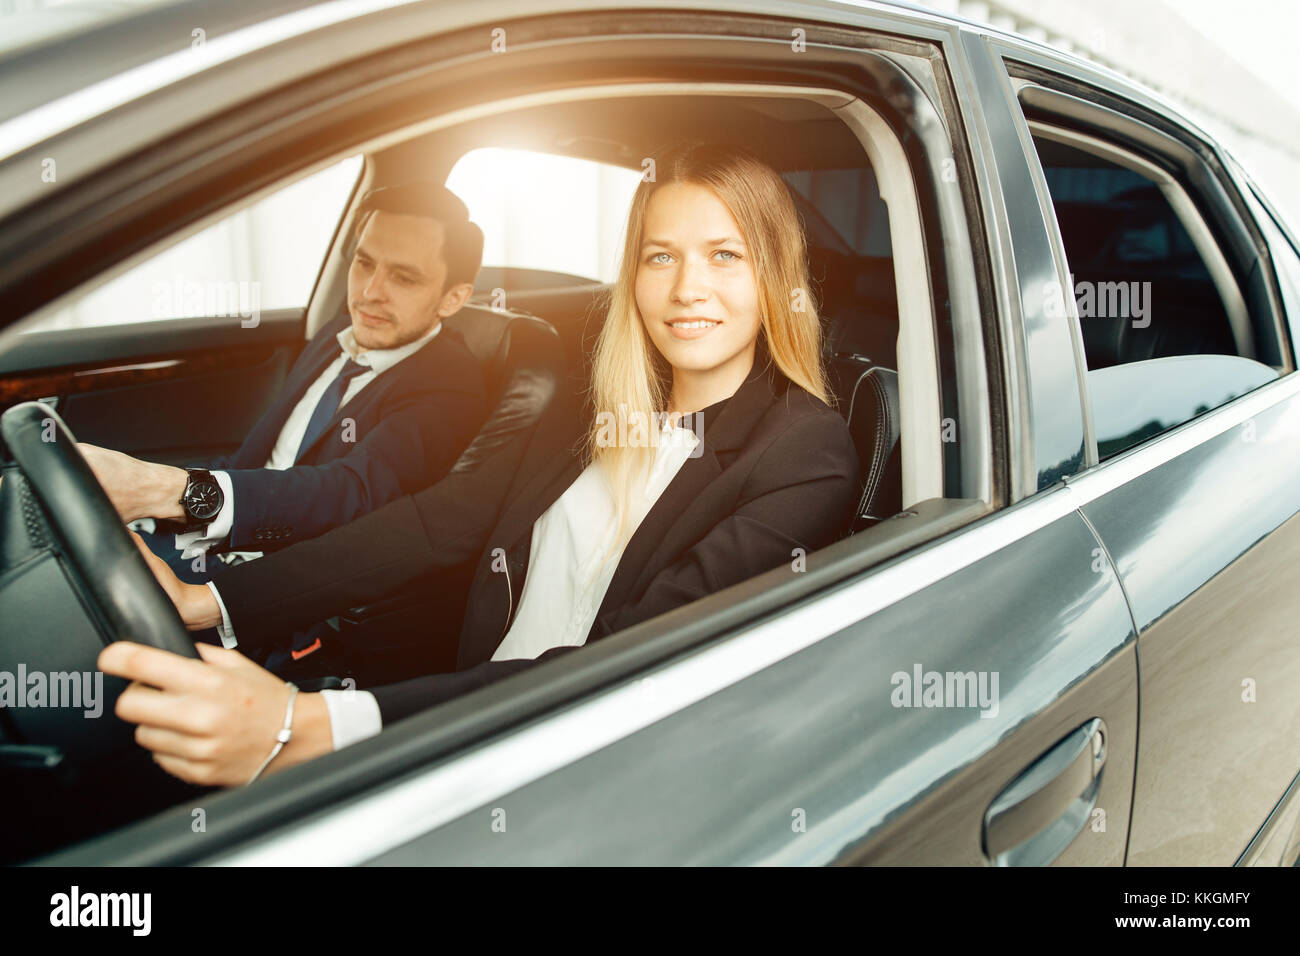 Driving School - woman steer car with steering wheel, maybe she has driving test - Stock Image